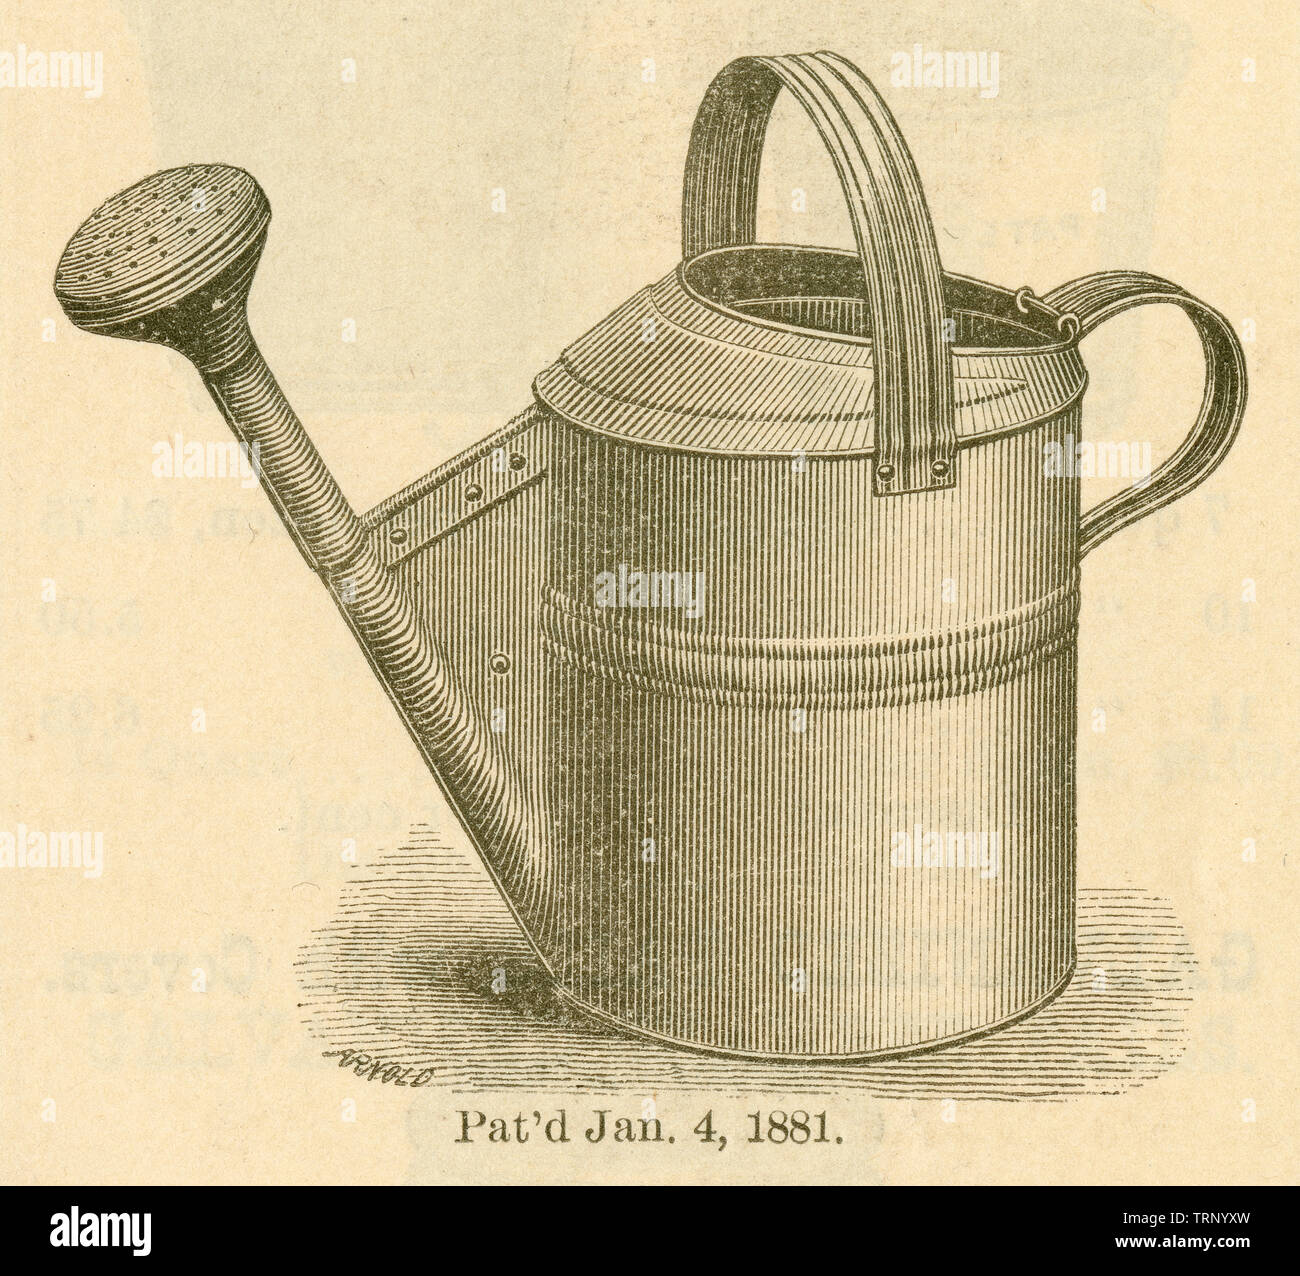 Antique 1881 engraving, galvanized watering pot by Iron Clad Manufacturing Company in Brooklyn, New York. SOURCE: ORIGINAL CATALOG. - Stock Image